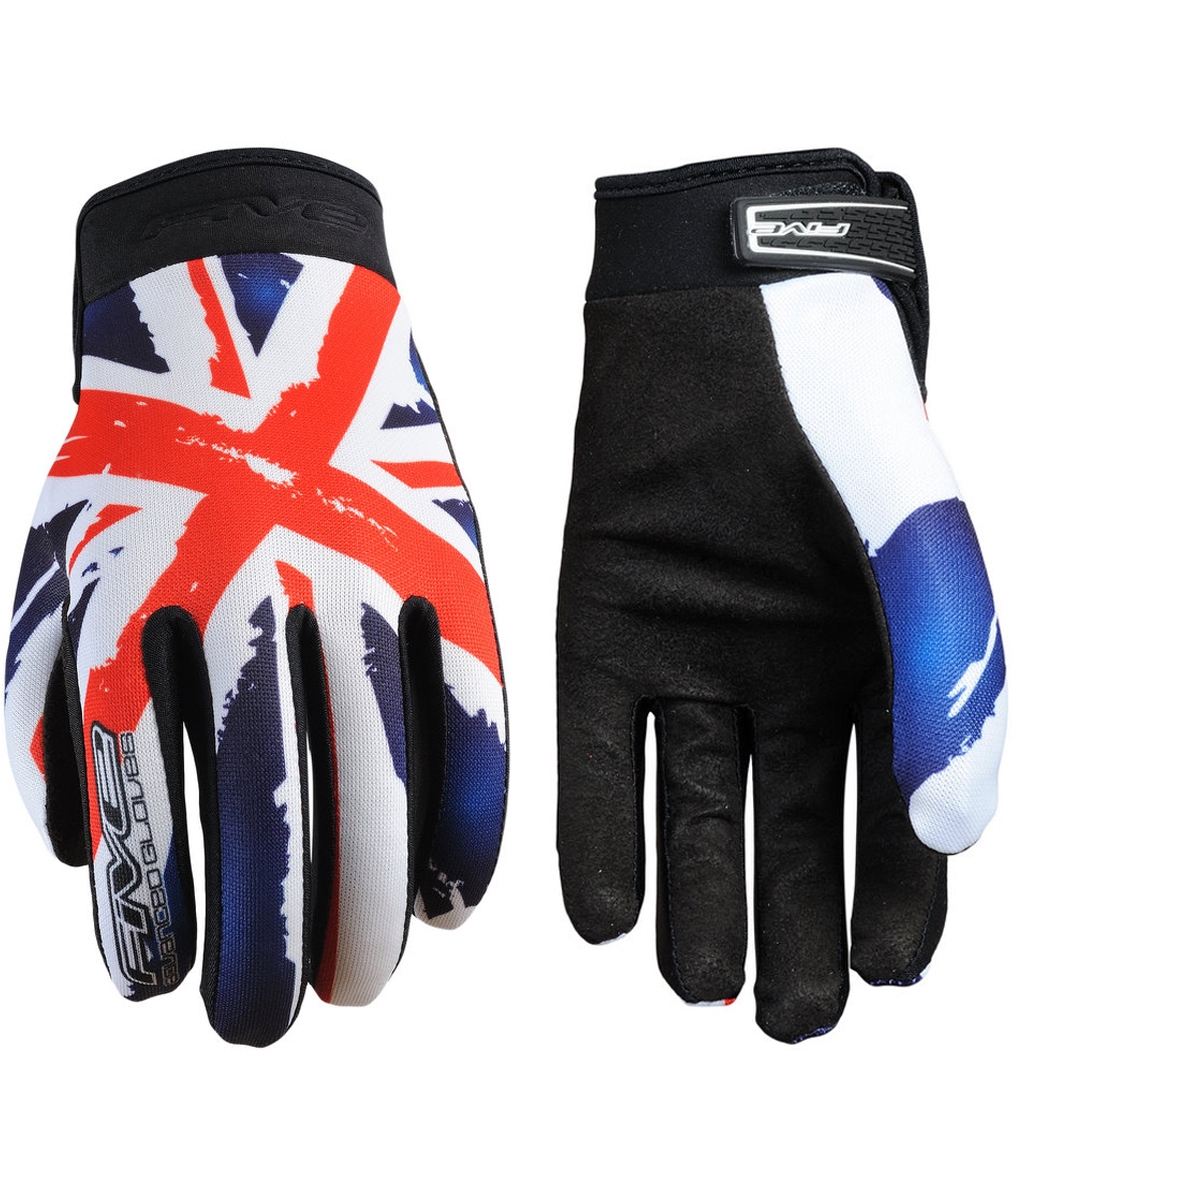 Gants Five Planet Patriot Angleterre - XS